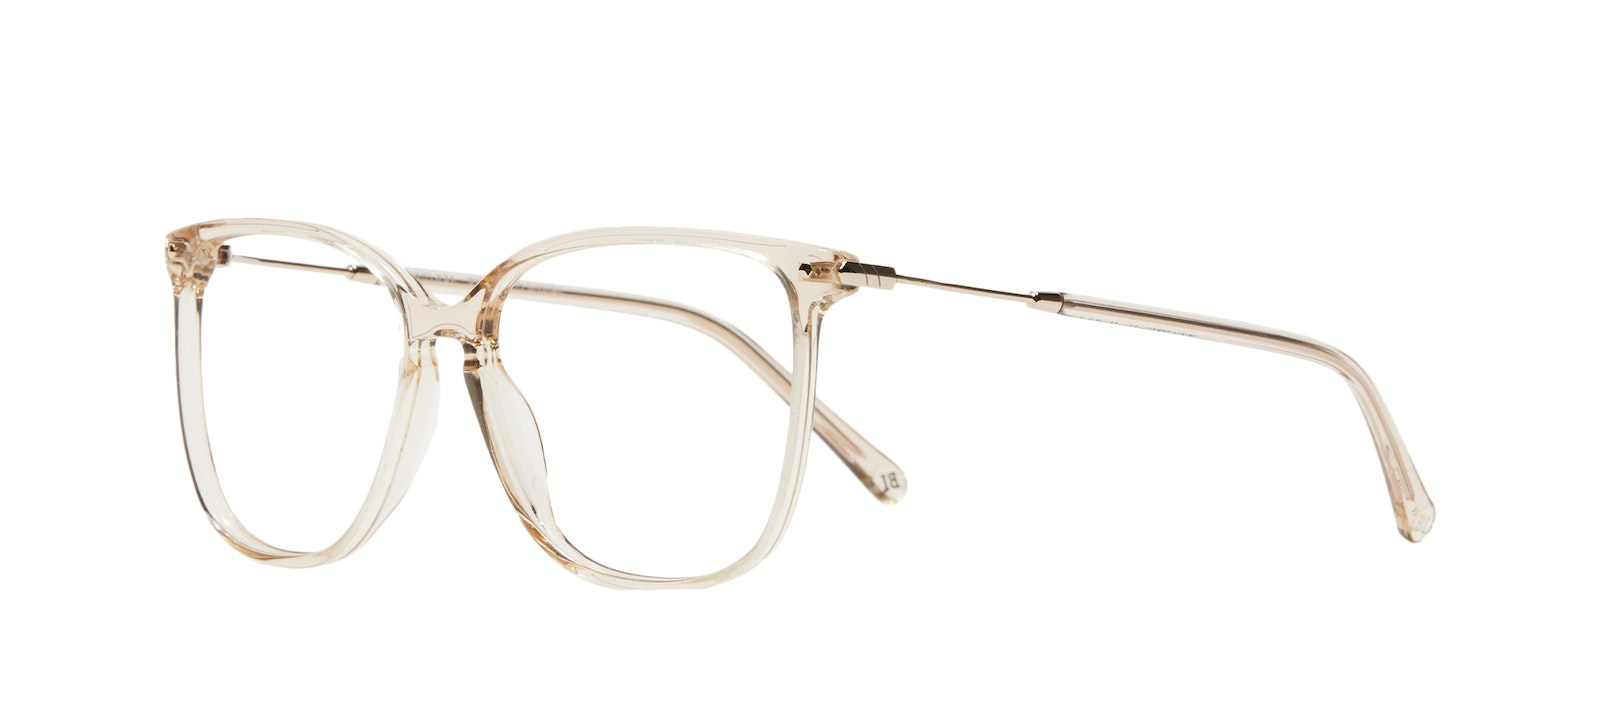 Affordable Fashion Glasses Square Eyeglasses Women Sonia M Blush Tilt